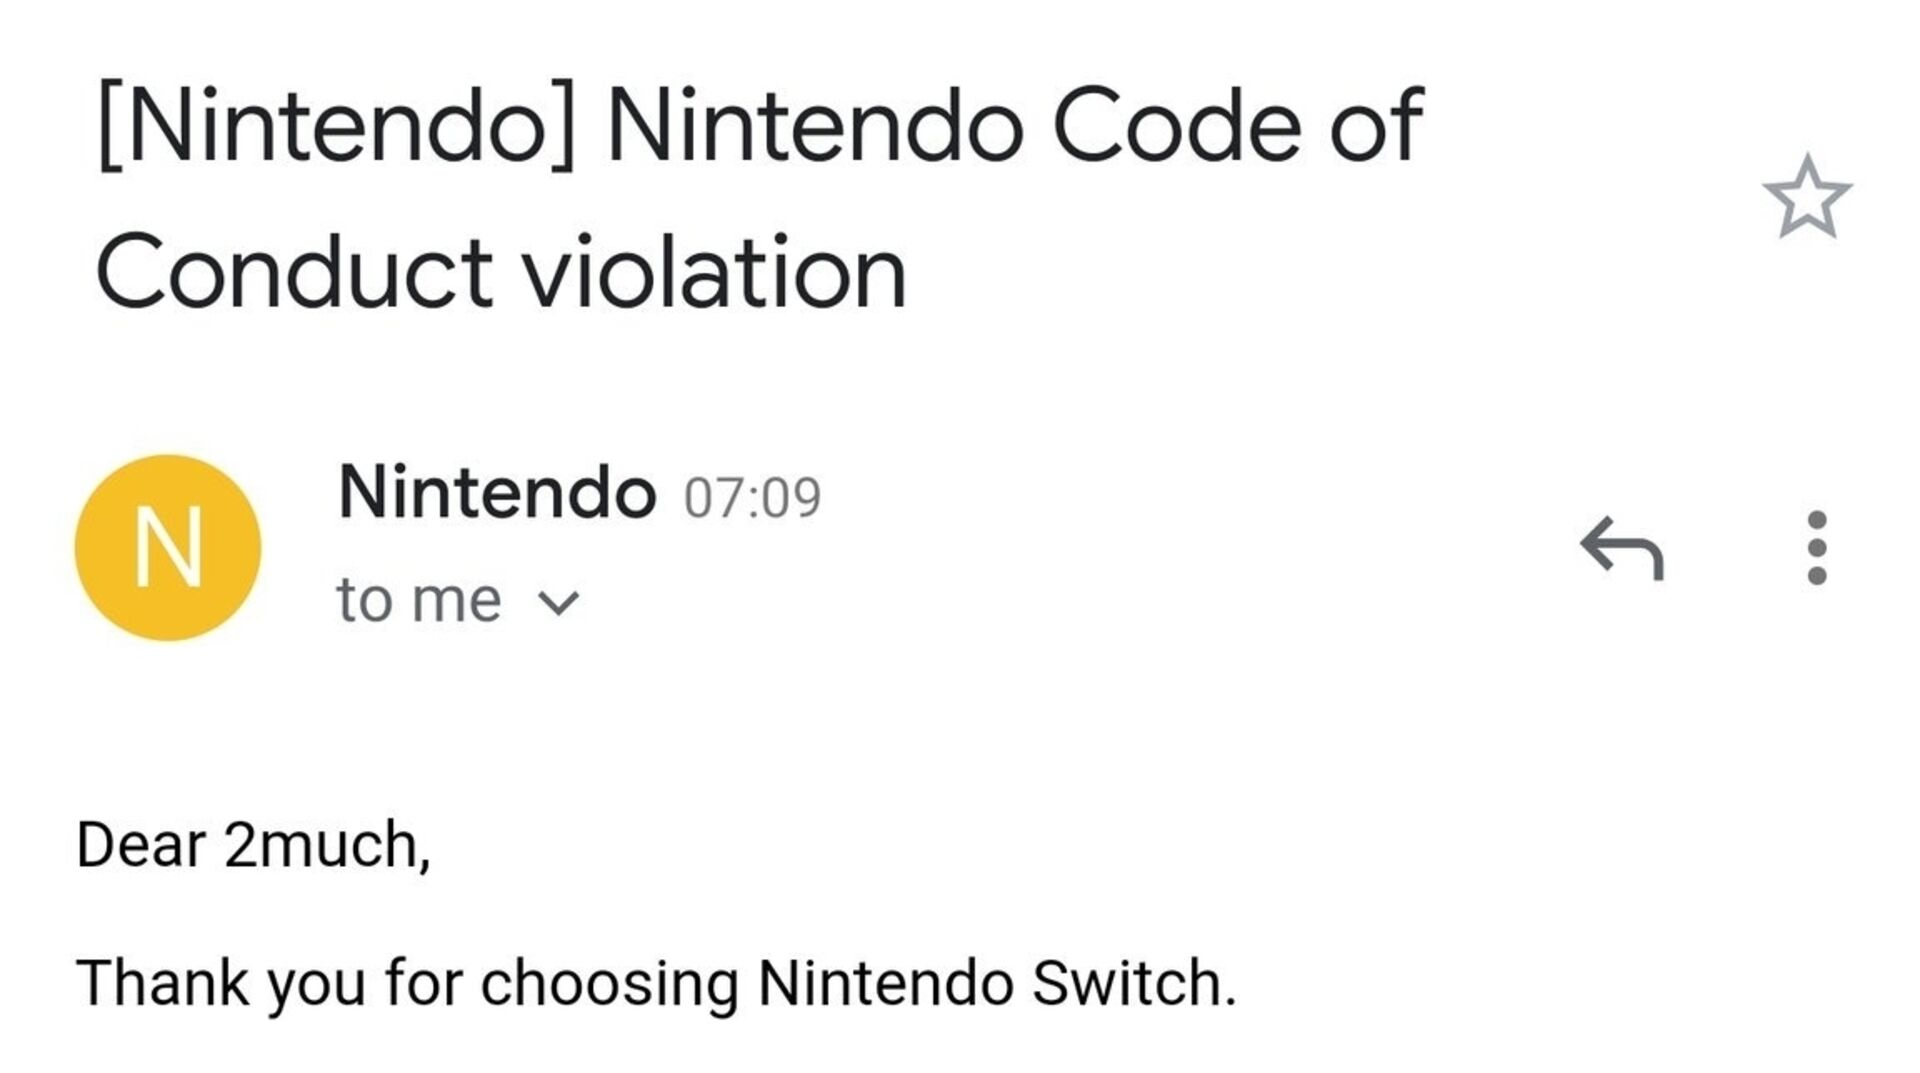 Nintendo is deleting what it deems inappropriate Super Smash